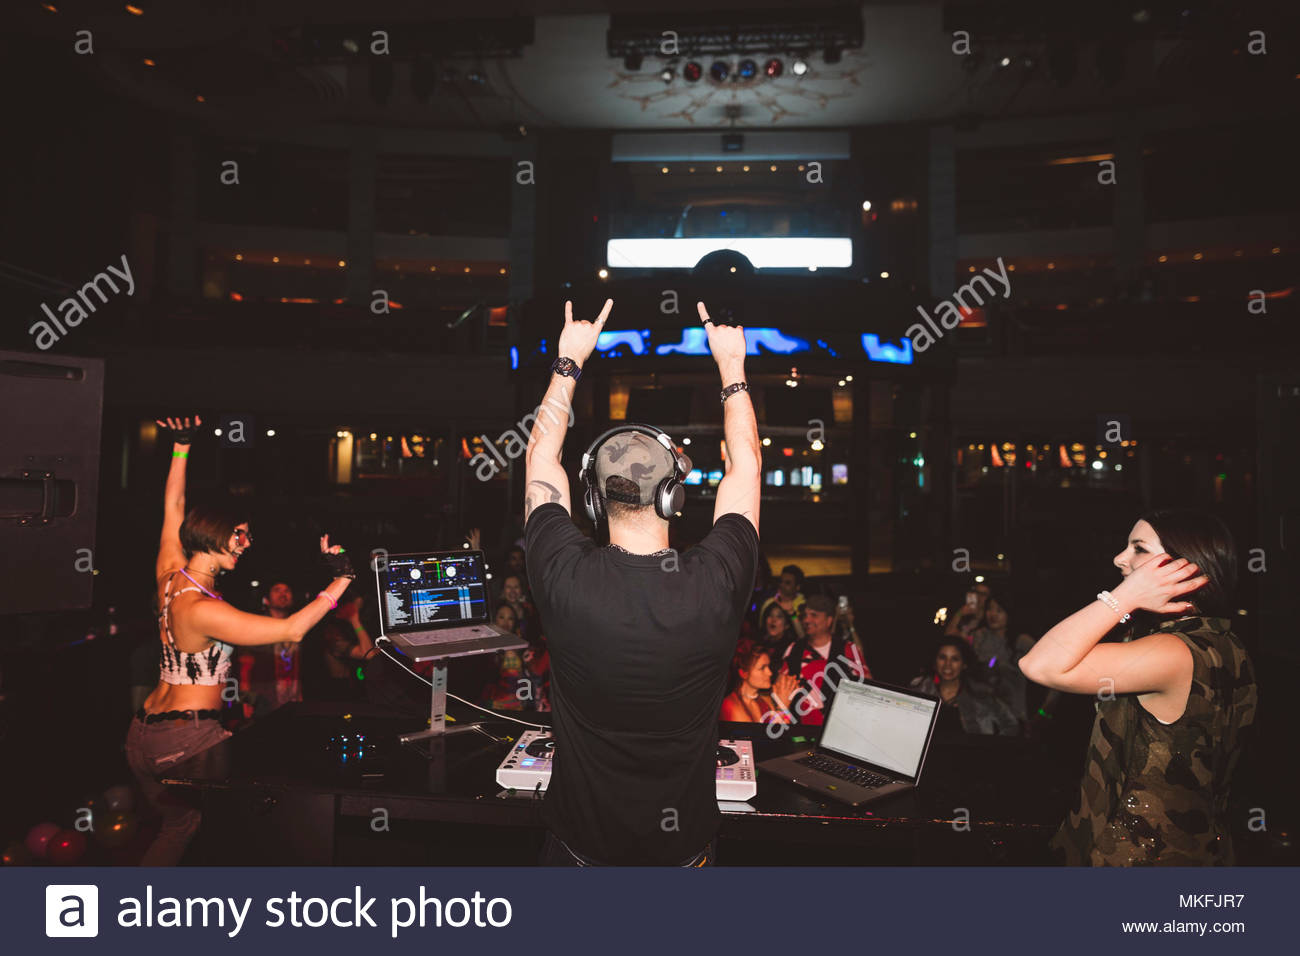 Enthusiastic DJ on stage gesturing to crowd in nightclub - Stock Image